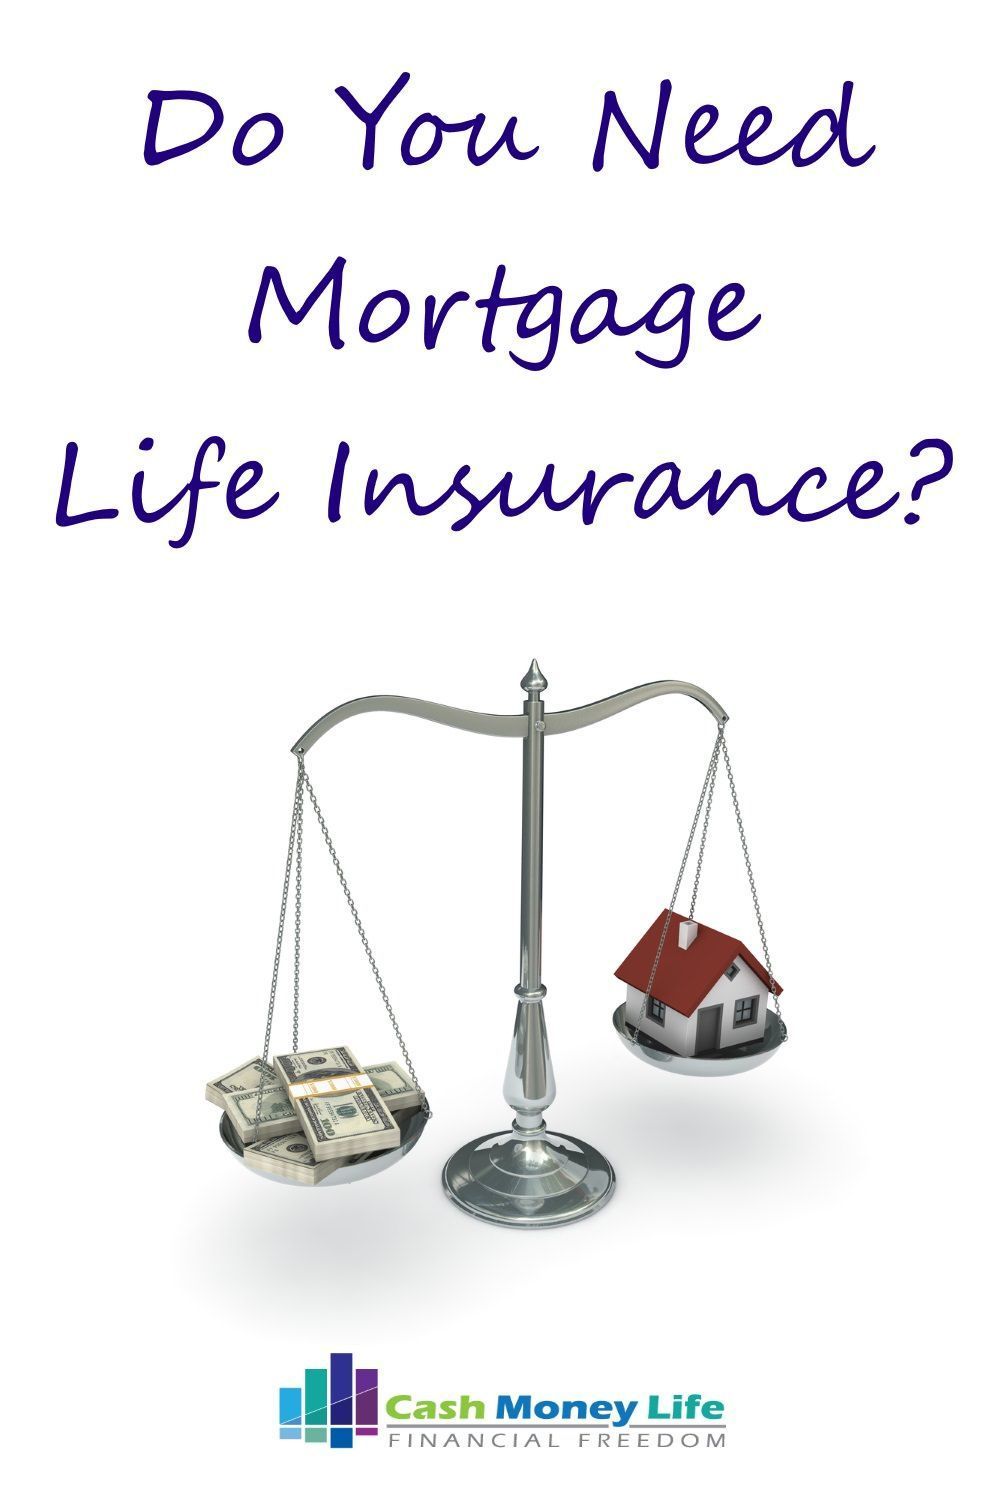 Term Life Insurance Quotes Without Personal Information Do You Need Mortgage Life Insurance  Life Insurance Buying Tips